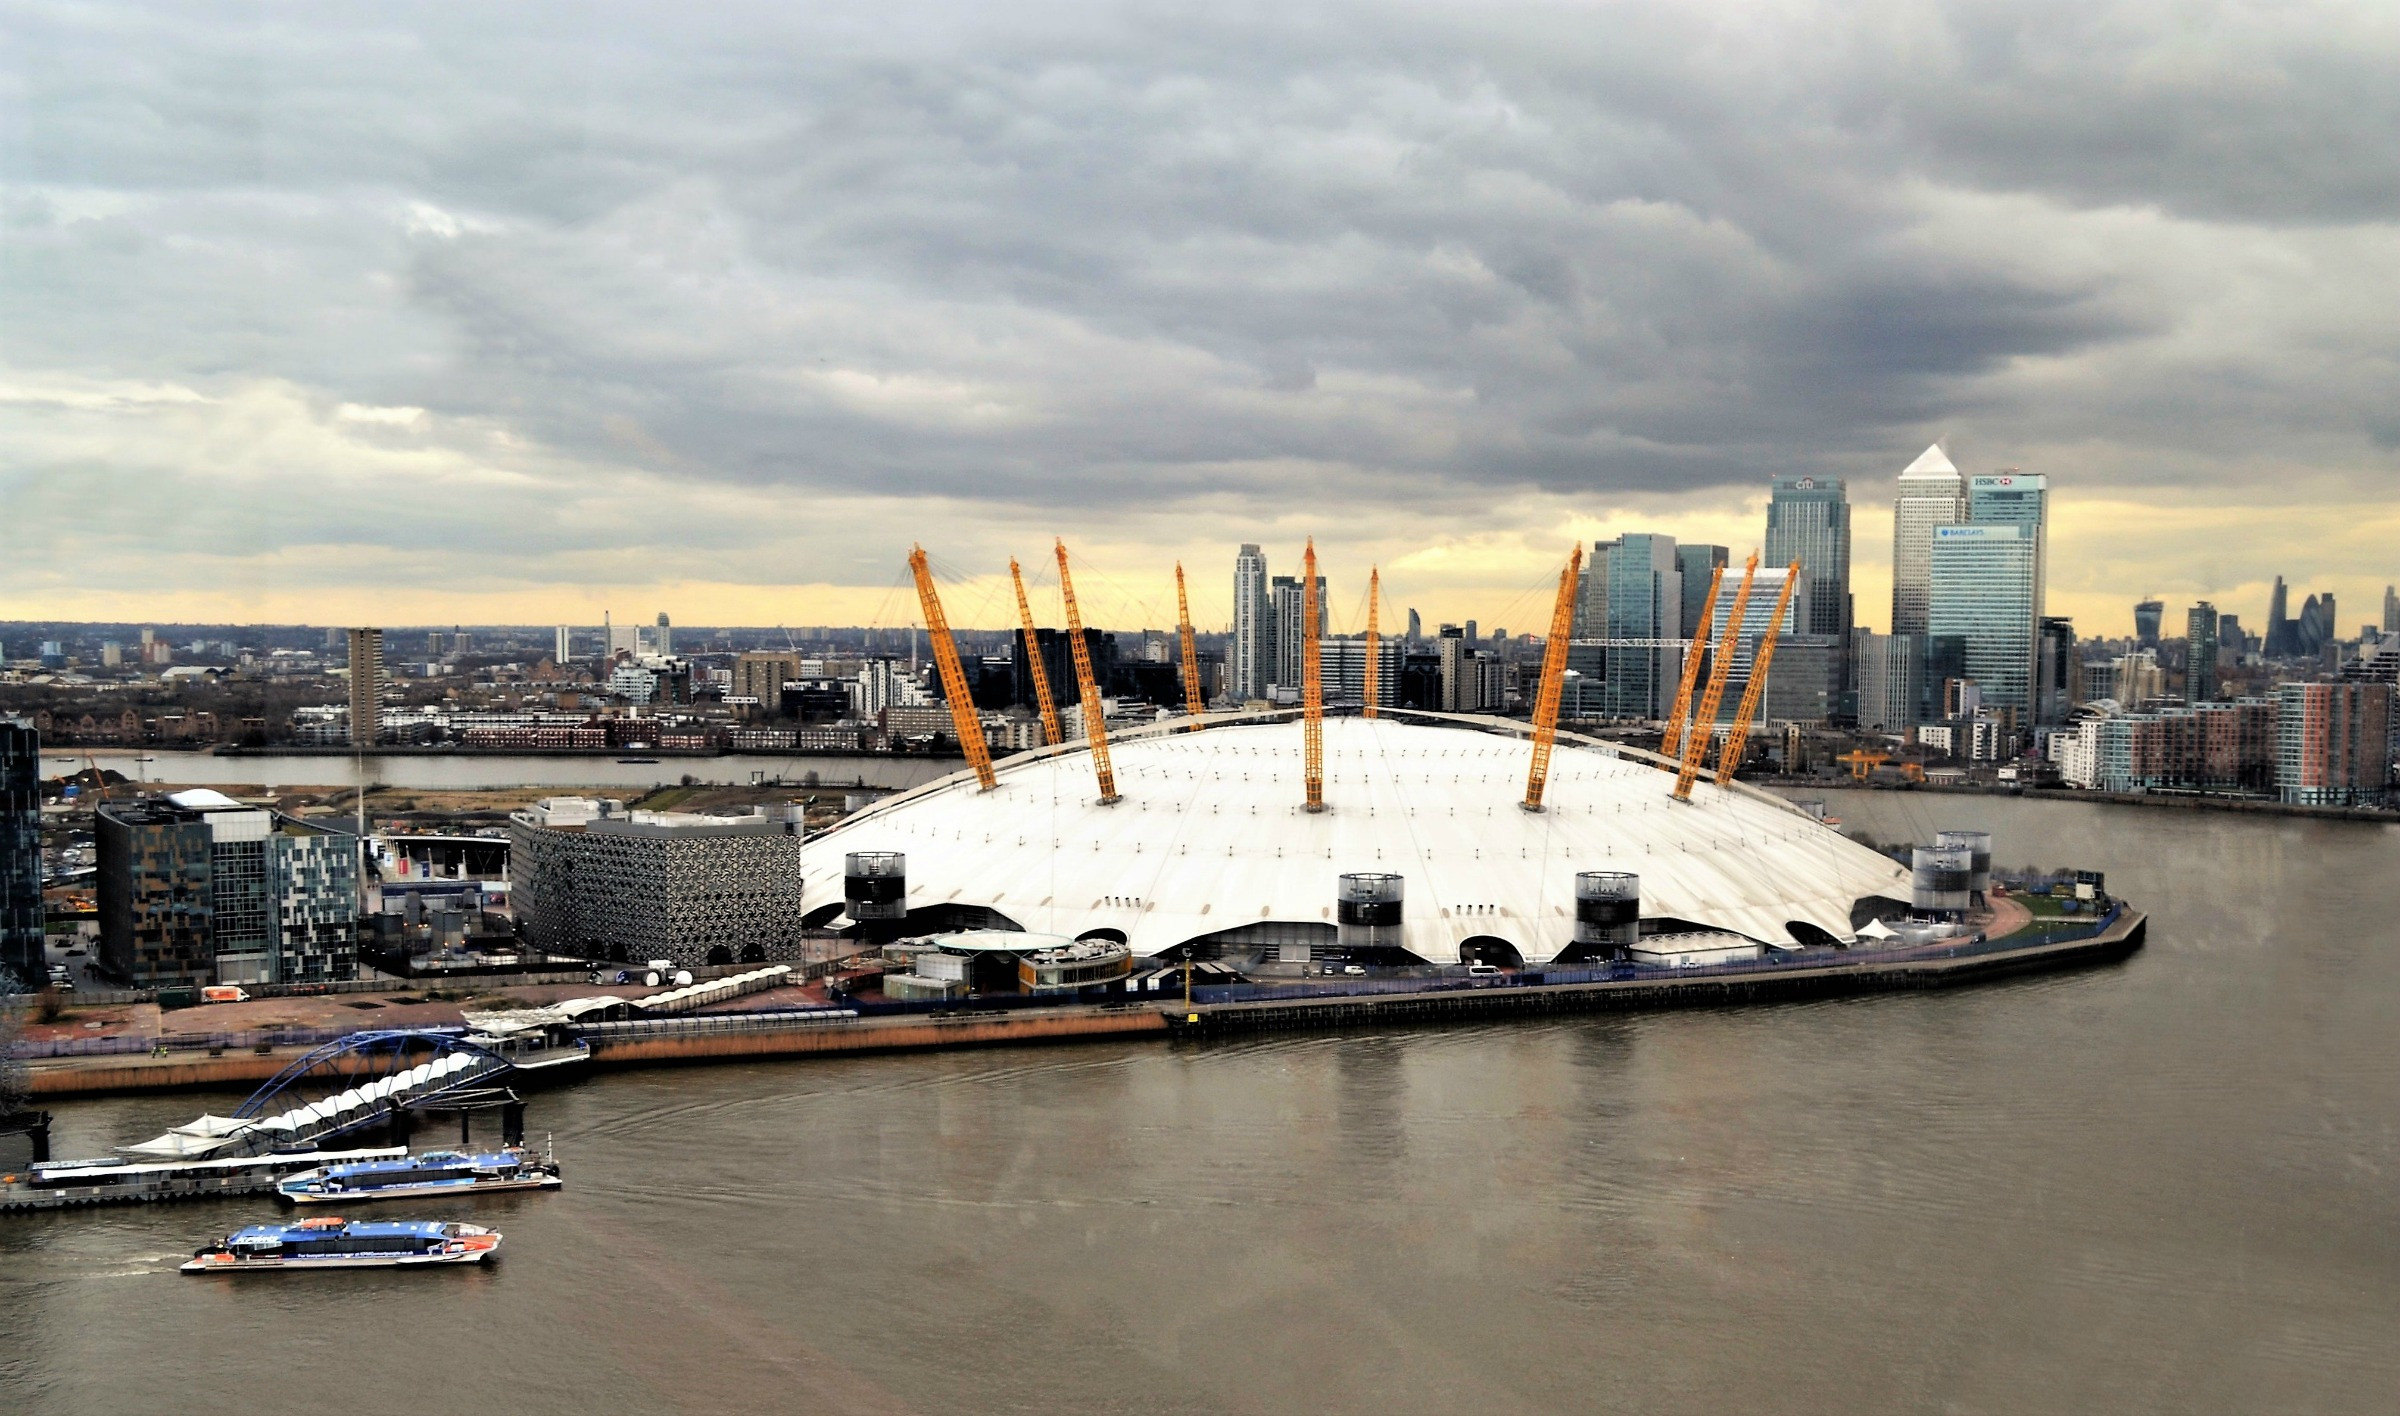 The O2  arena with Canary Wharf in the background